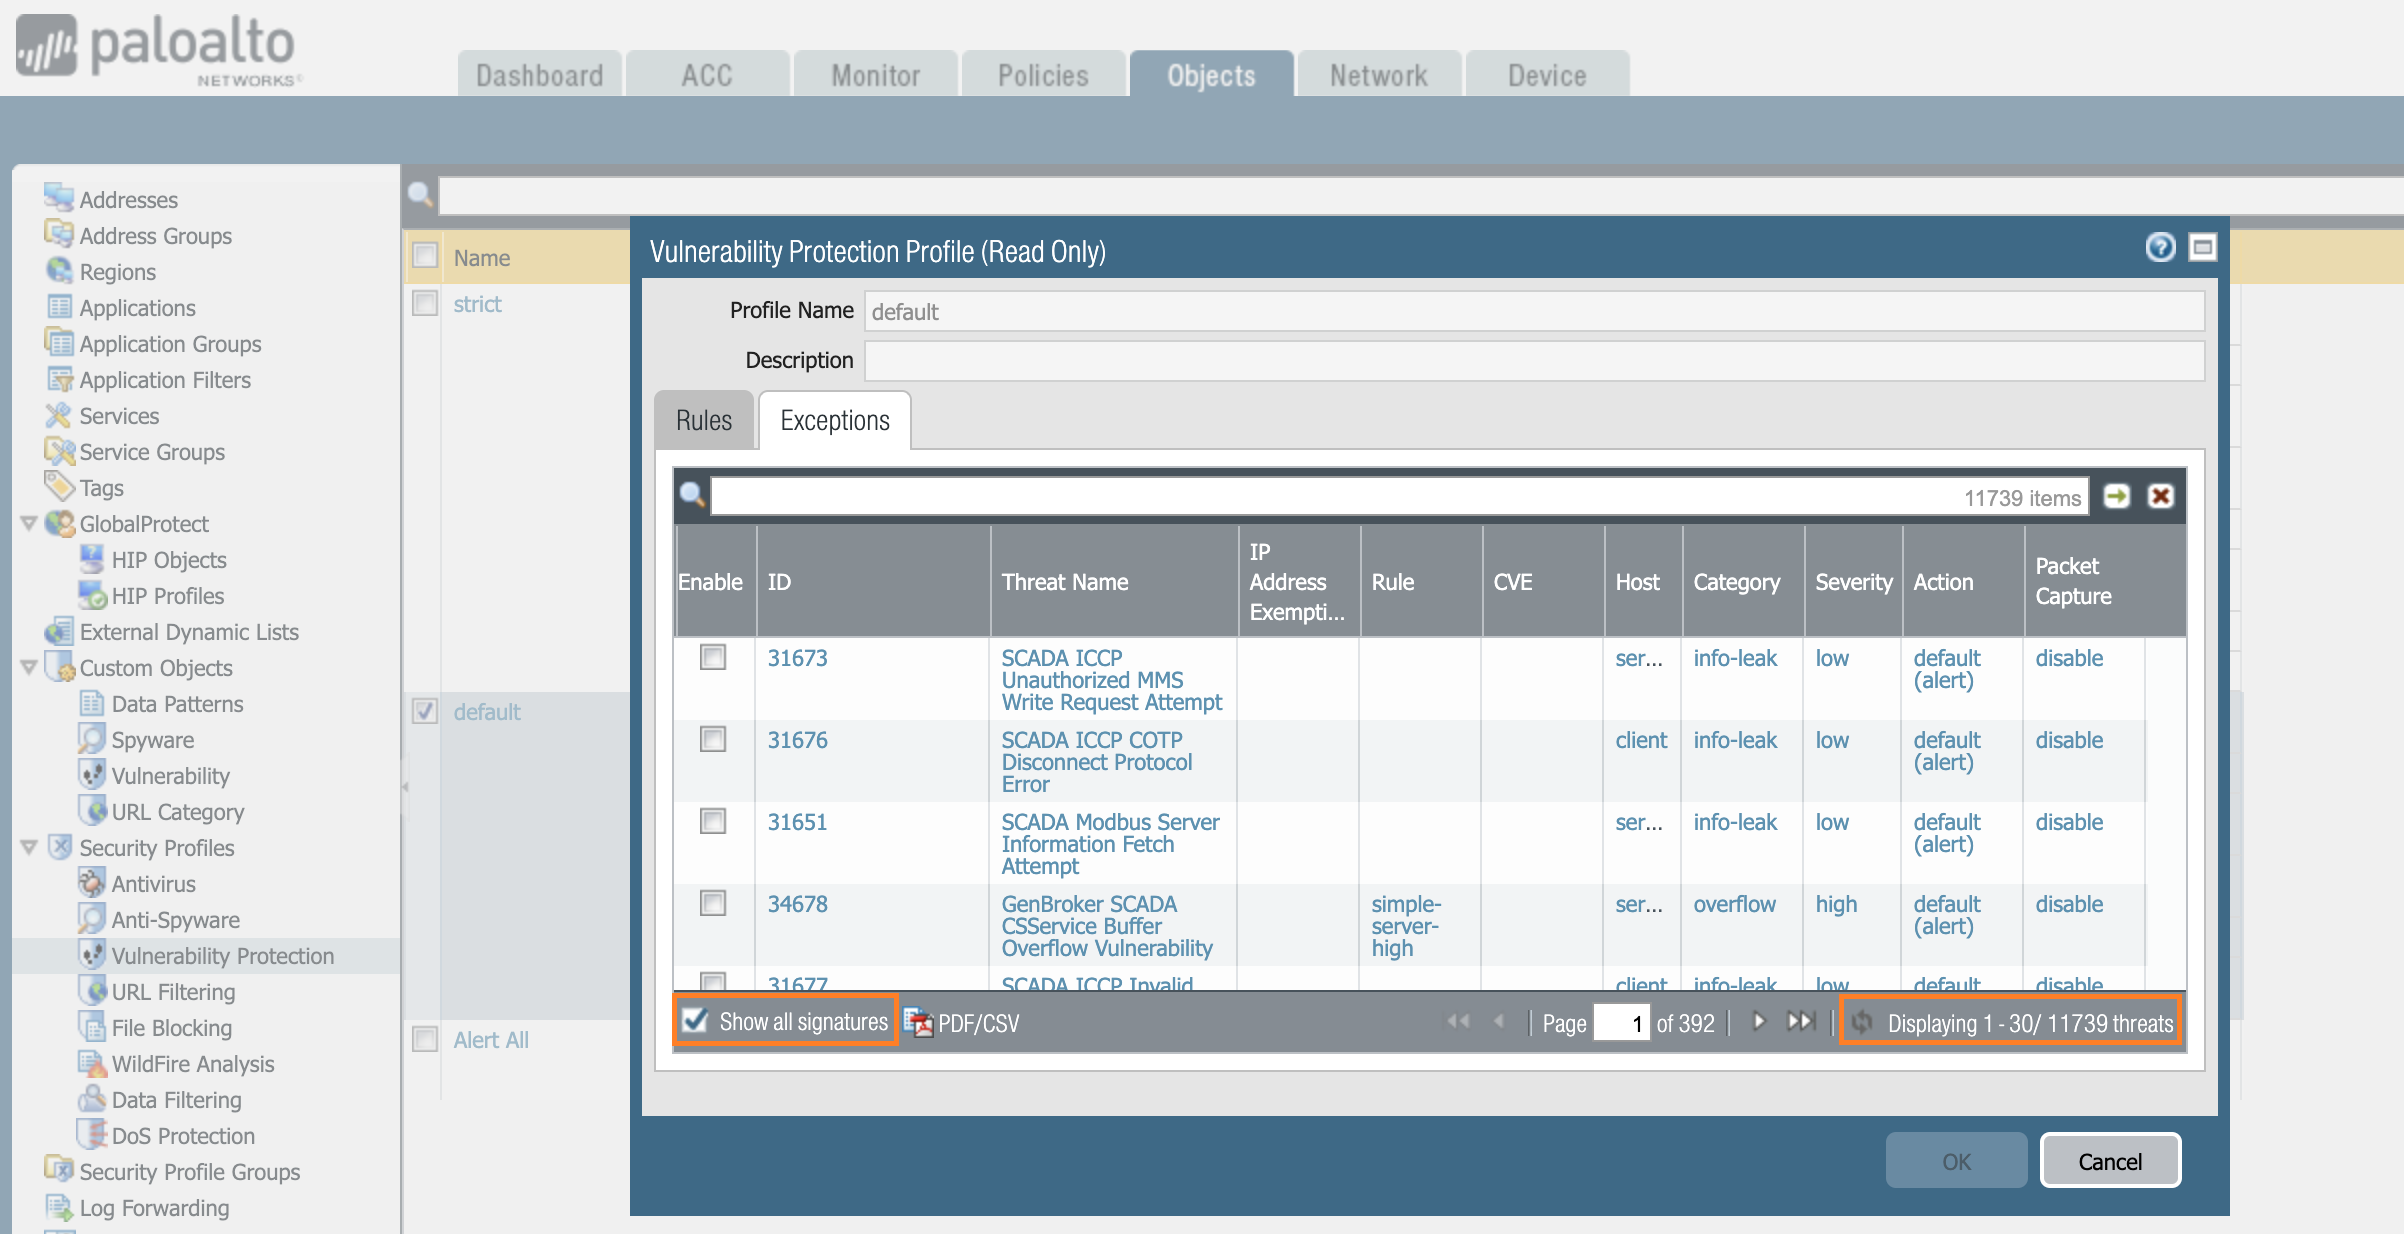 Palo Alto Networks Knowledgebase: How to Export all Vulnerability